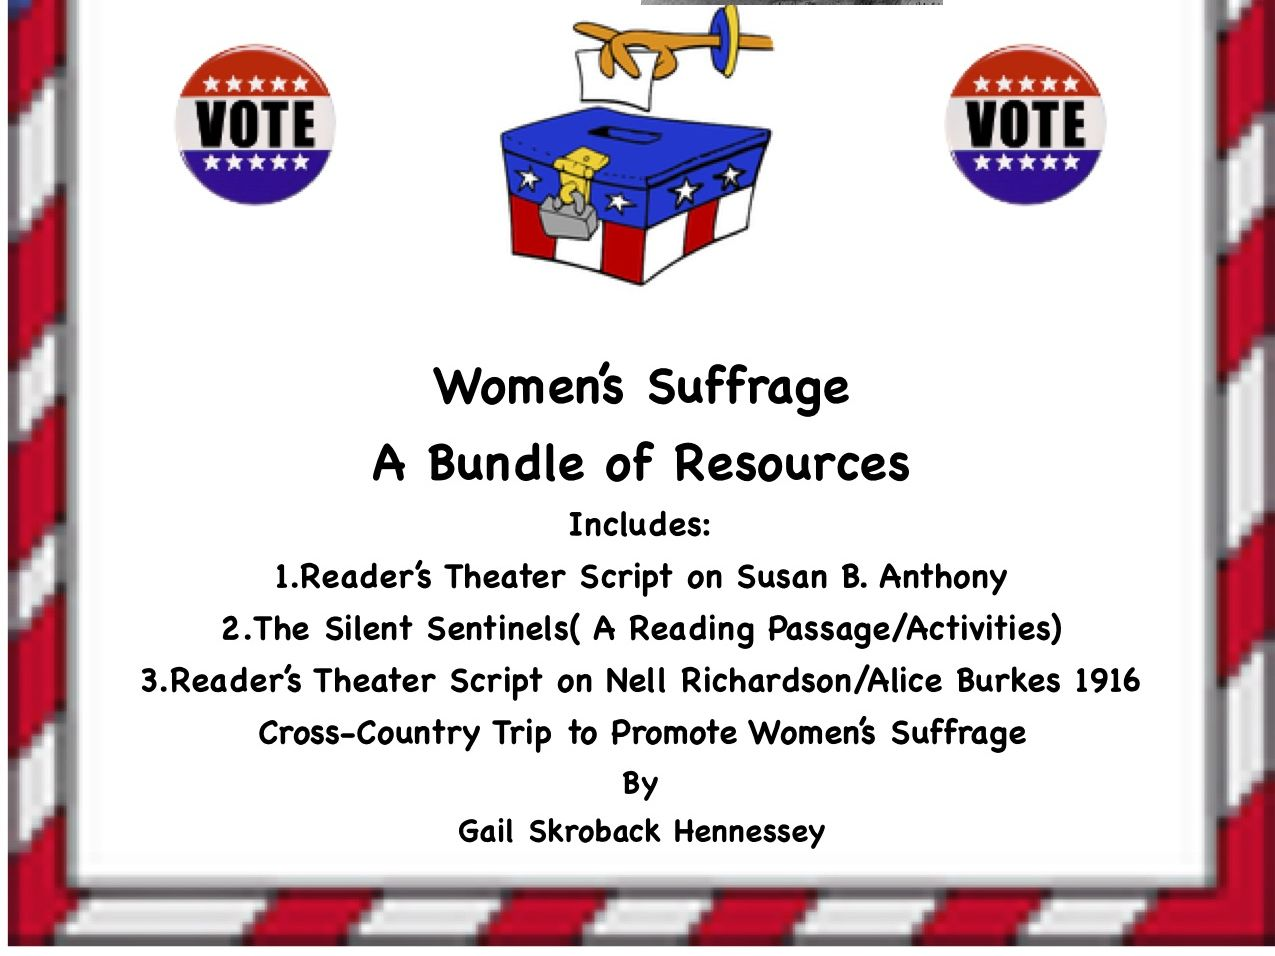 Women's Suffrage: A Bundle of Resources